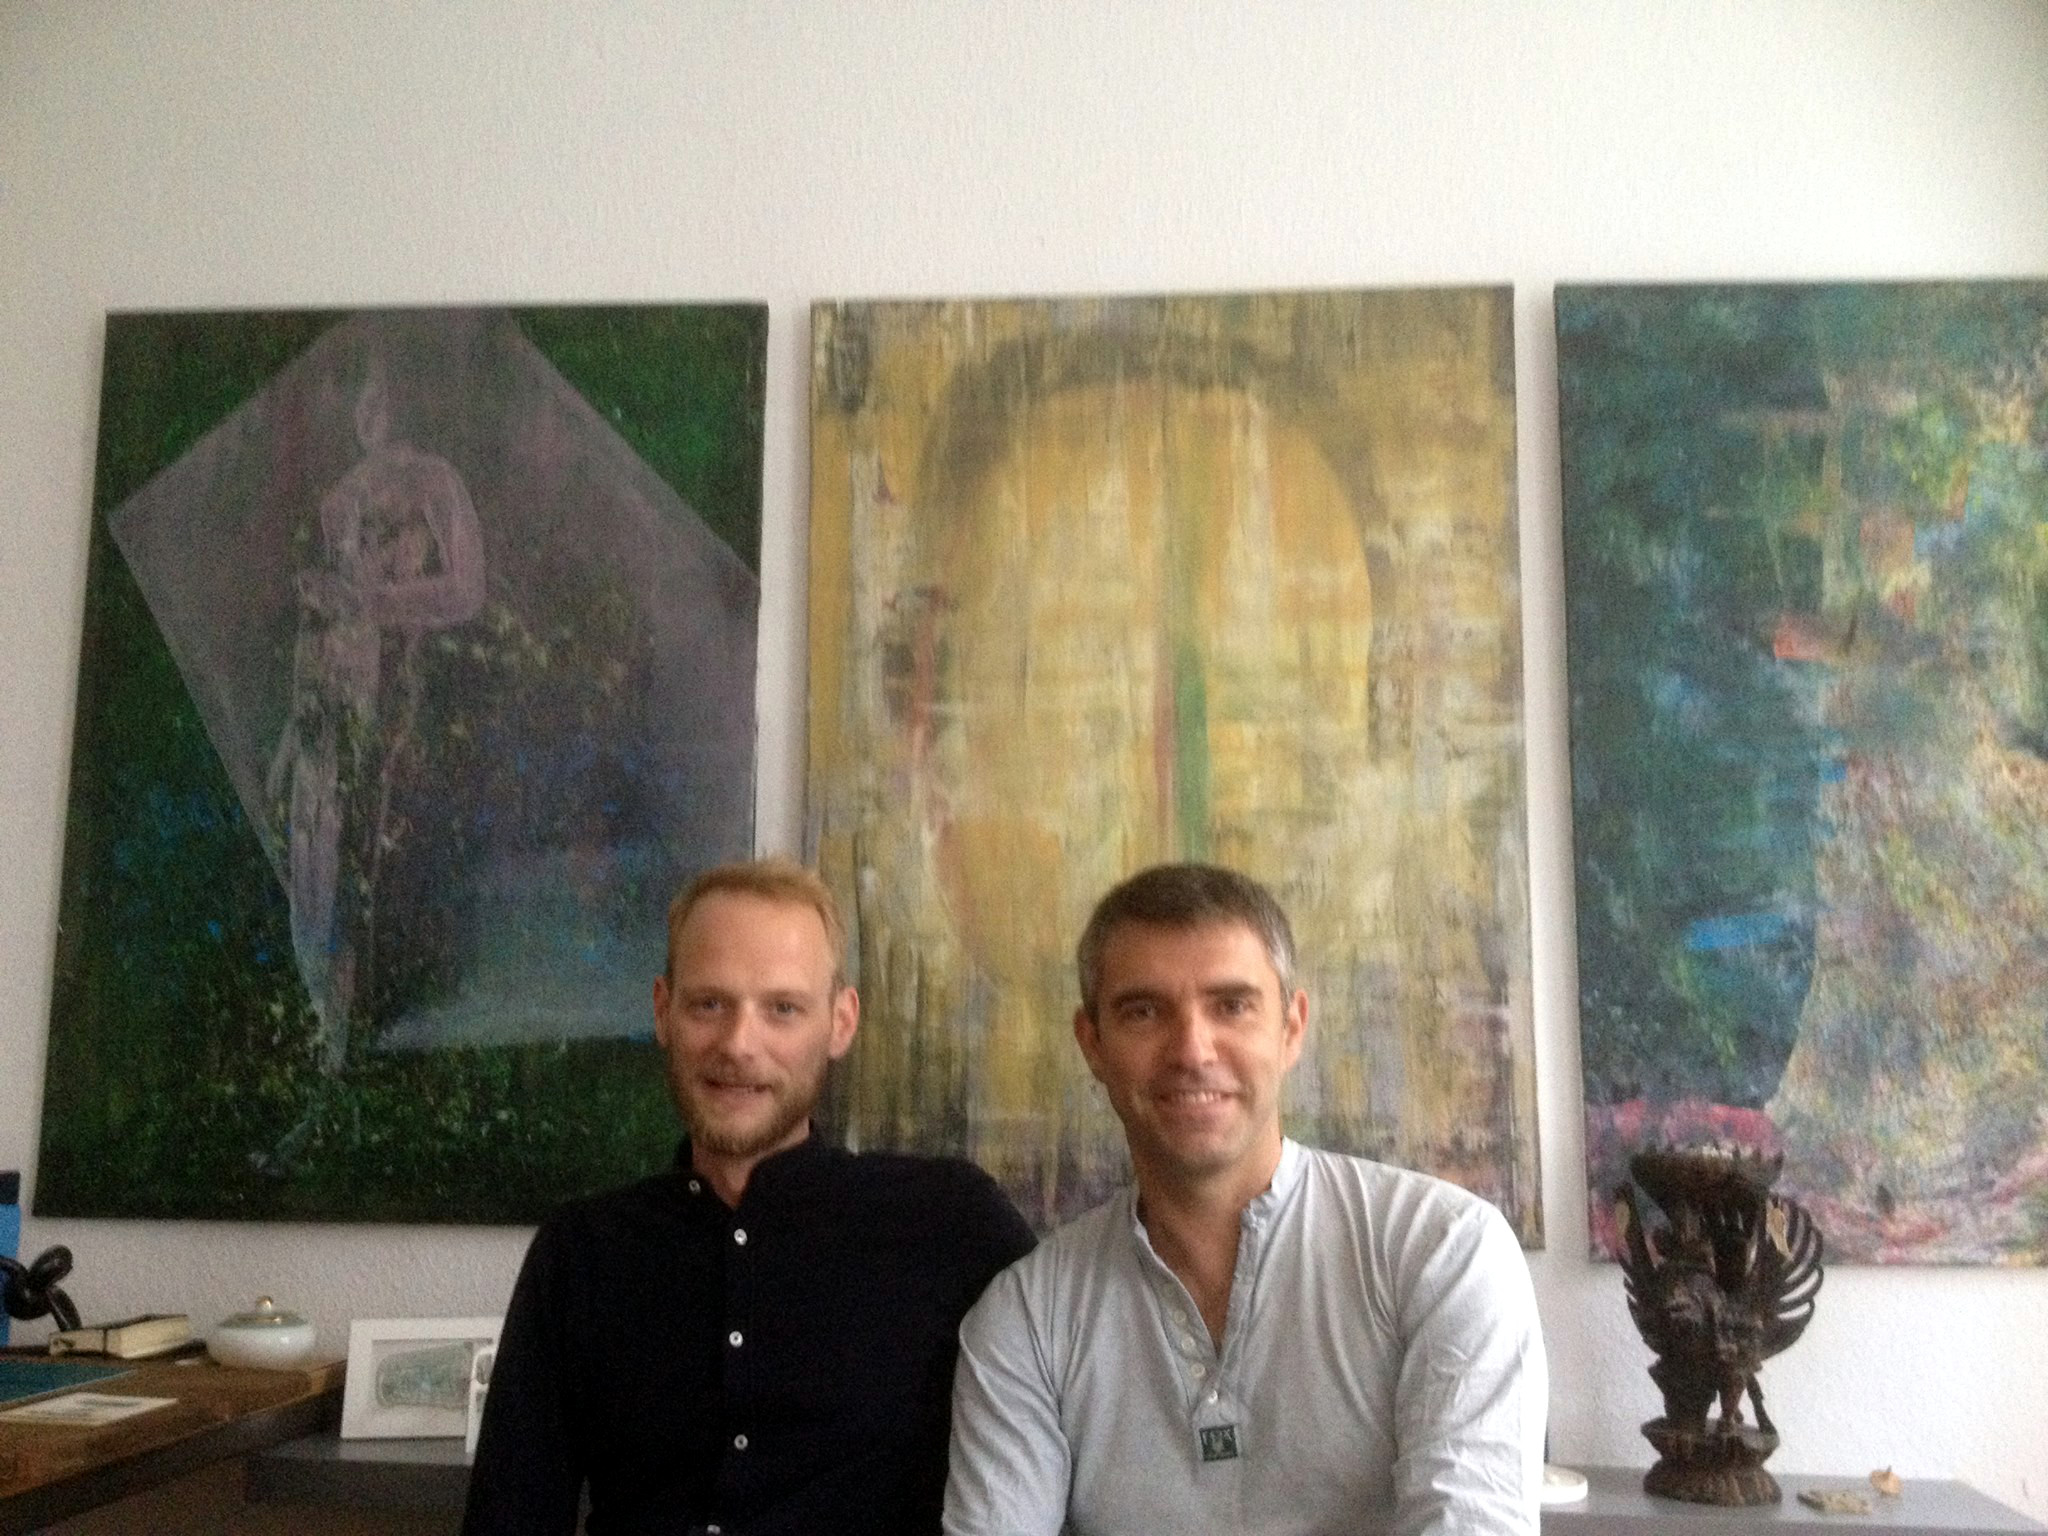 Hyperexpressionism at Retramp Galerie - Art critic David Miliozzi with artist Daniel Nagengast